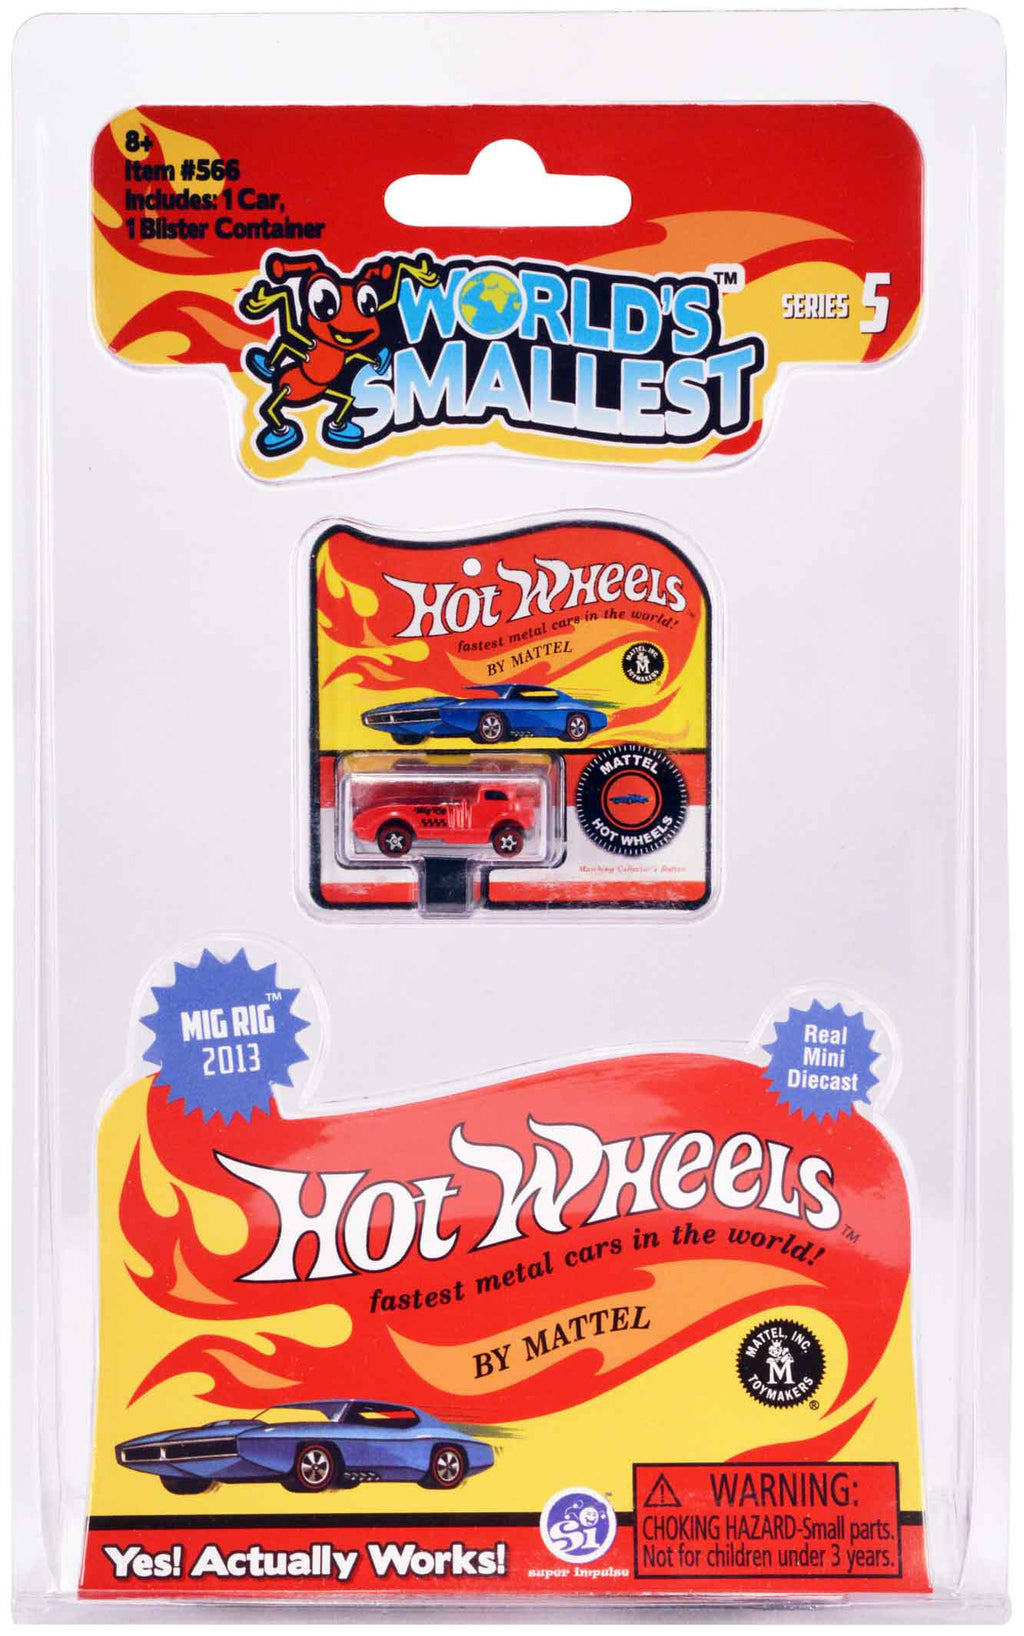 World's Smallest Hot Wheels - Series 5 - Mig Rig 2013